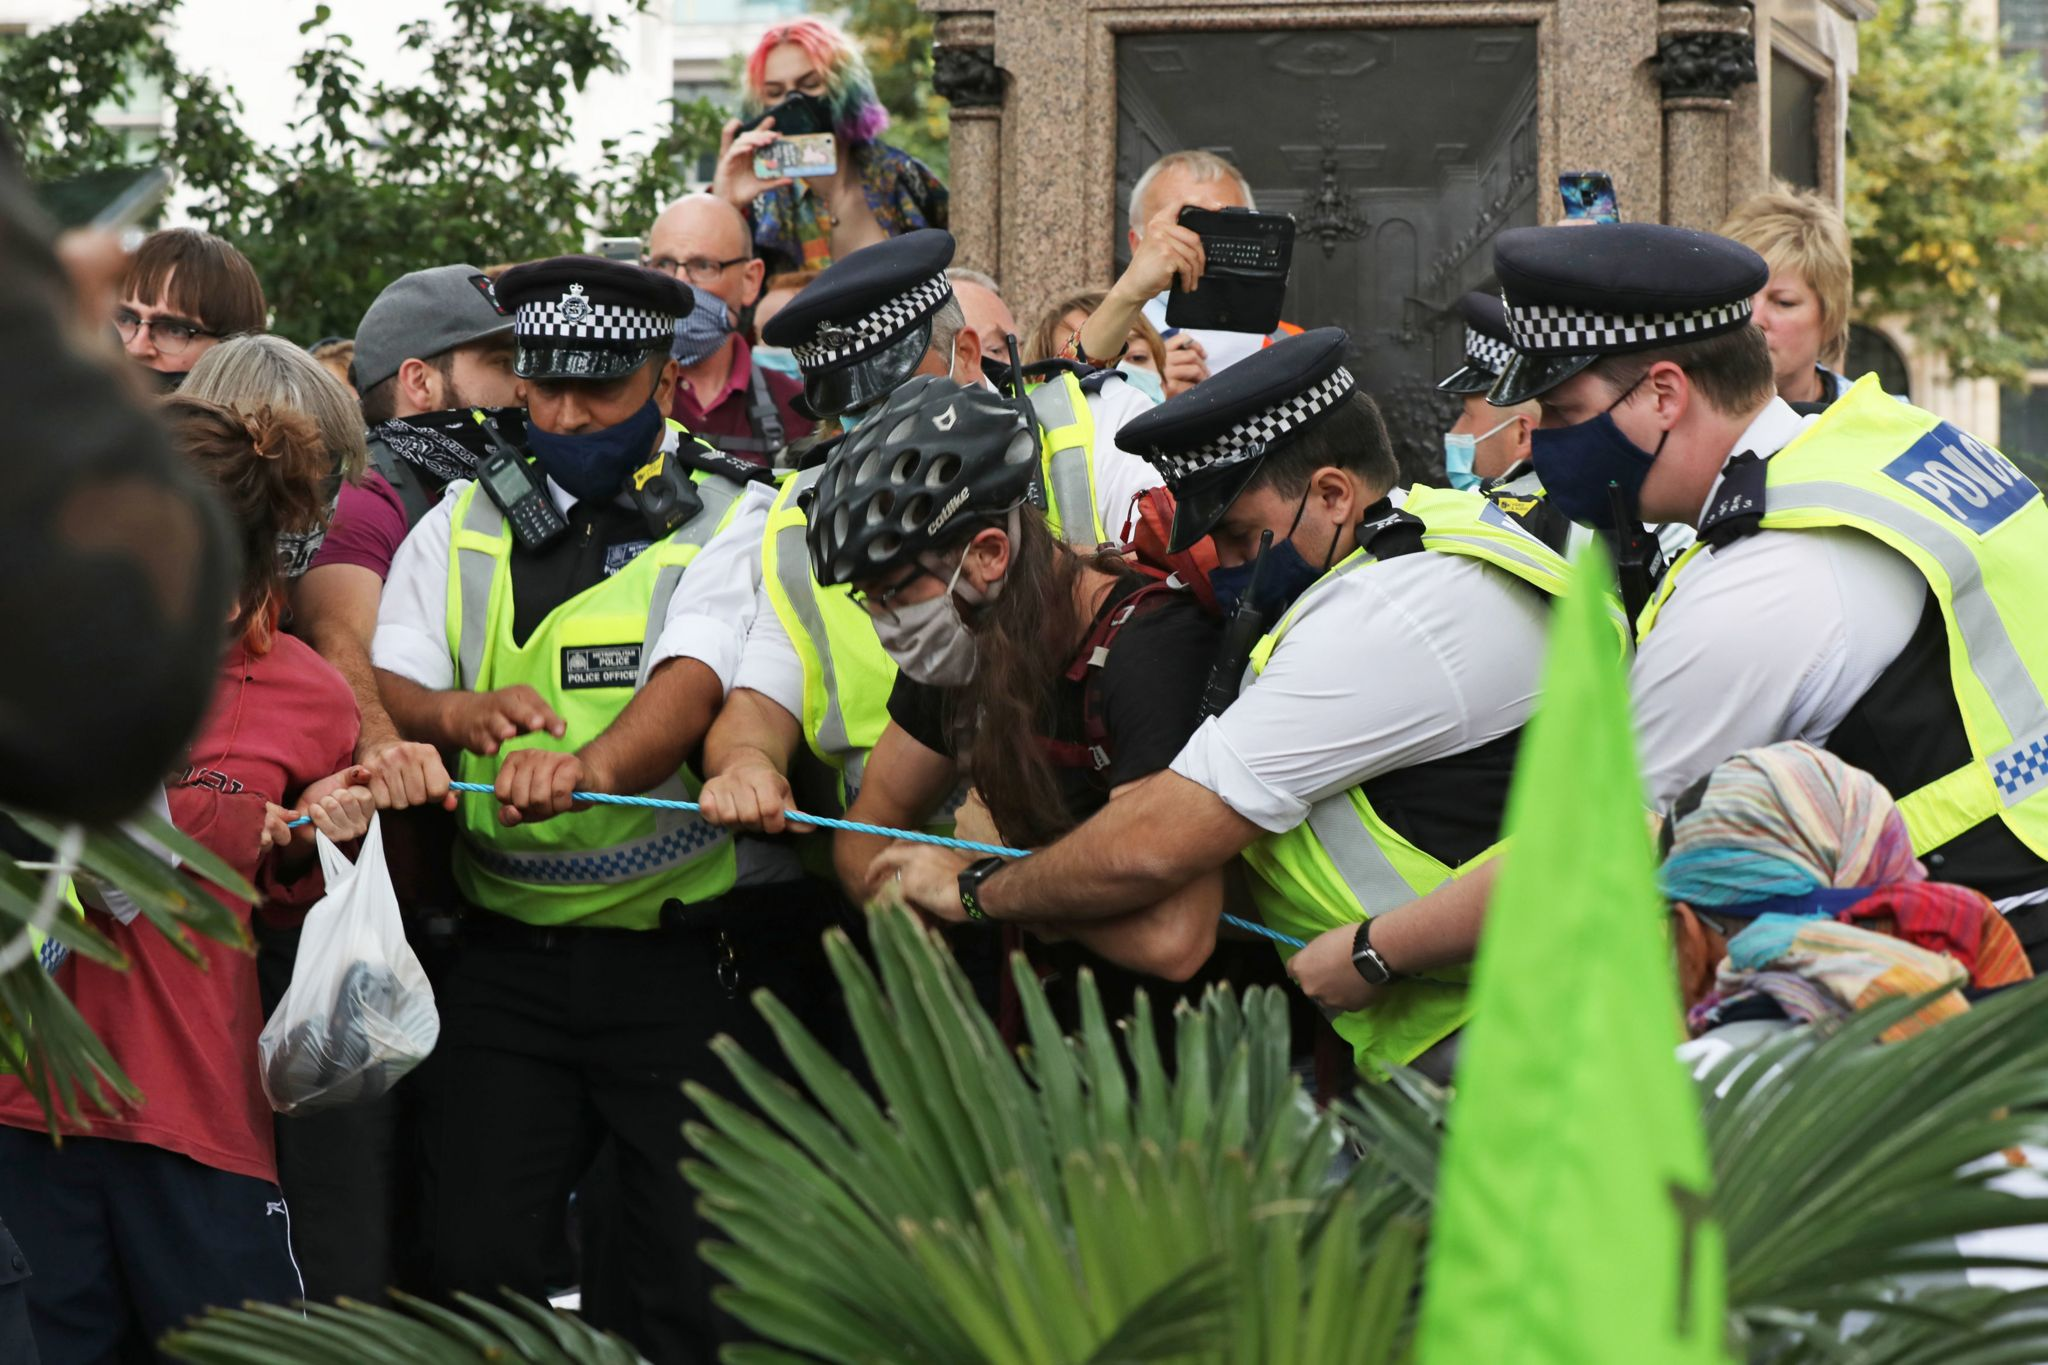 Extinction Rebellion protesters tussle with police officer in Parliament Square, London